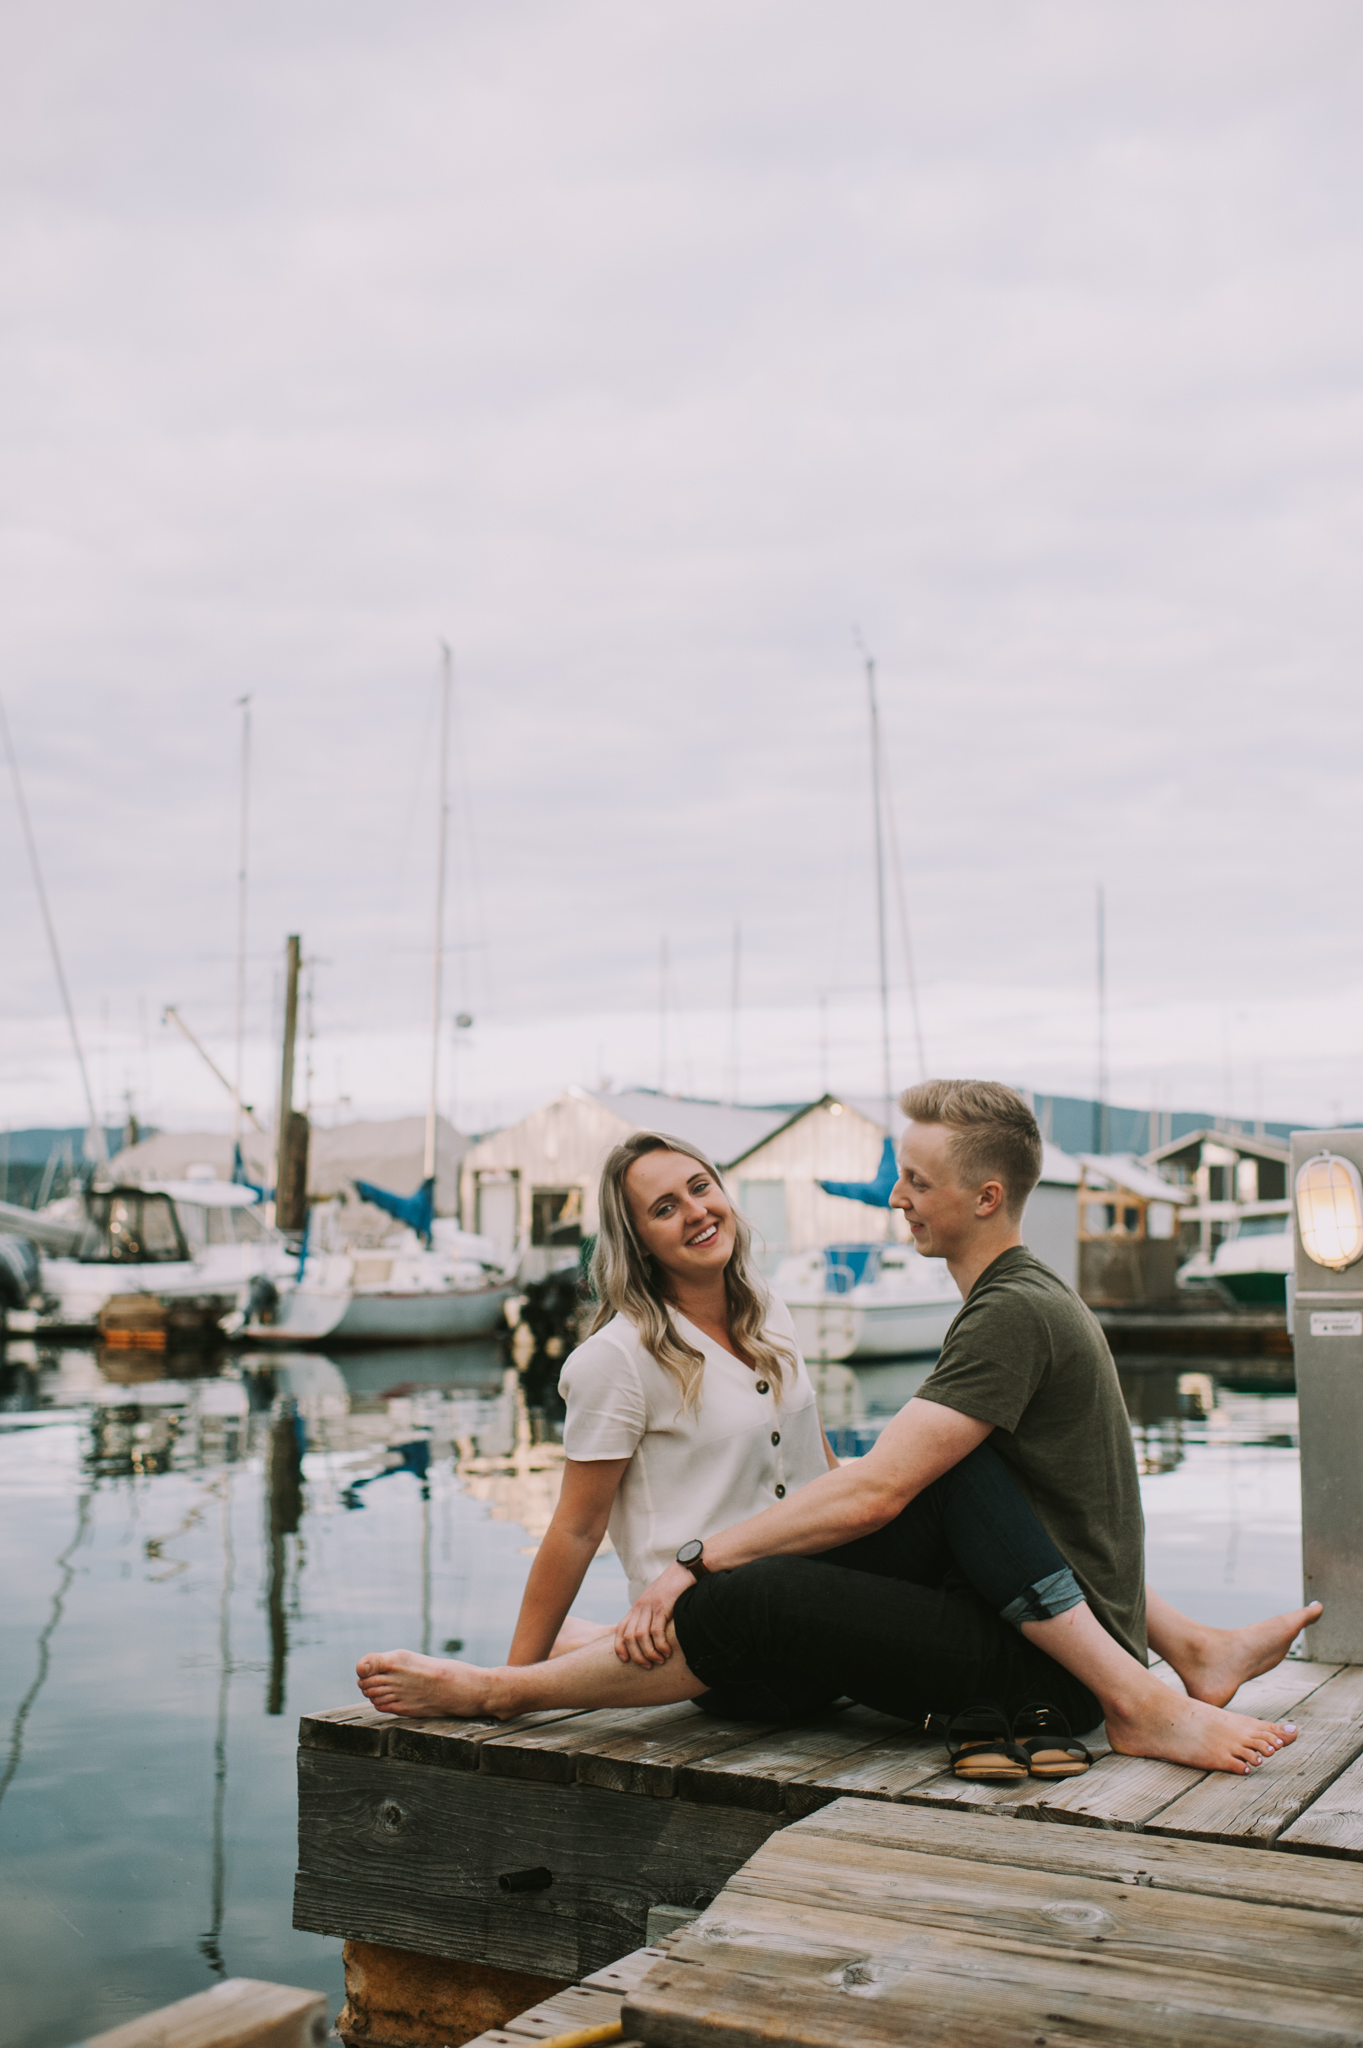 Leah+Rylan May2019_29.jpg